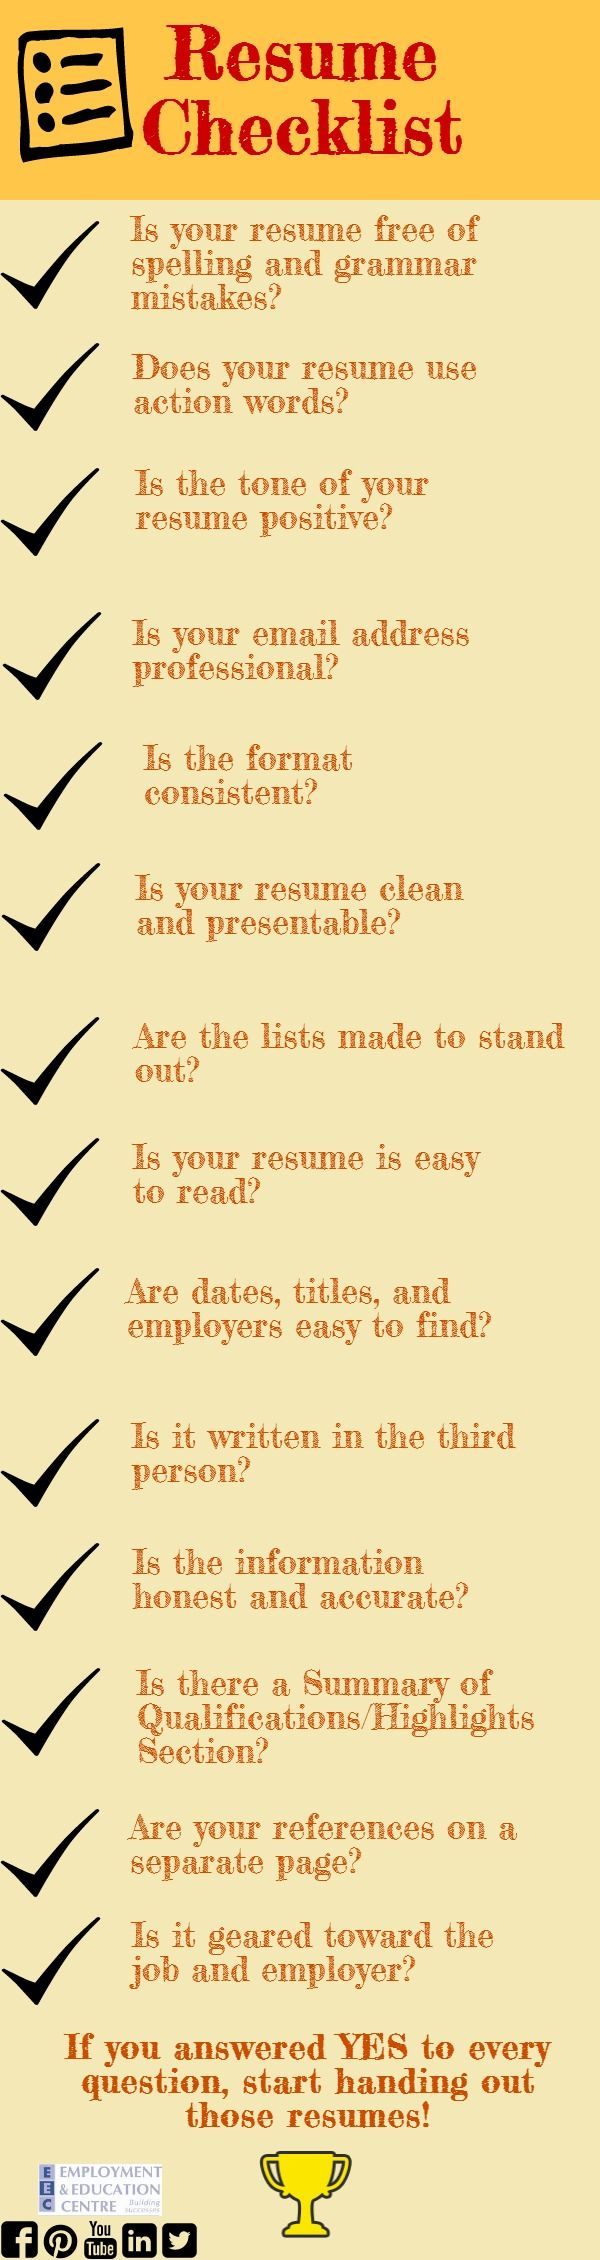 23 best Building Your Resume images on Pinterest | Resume tips ...